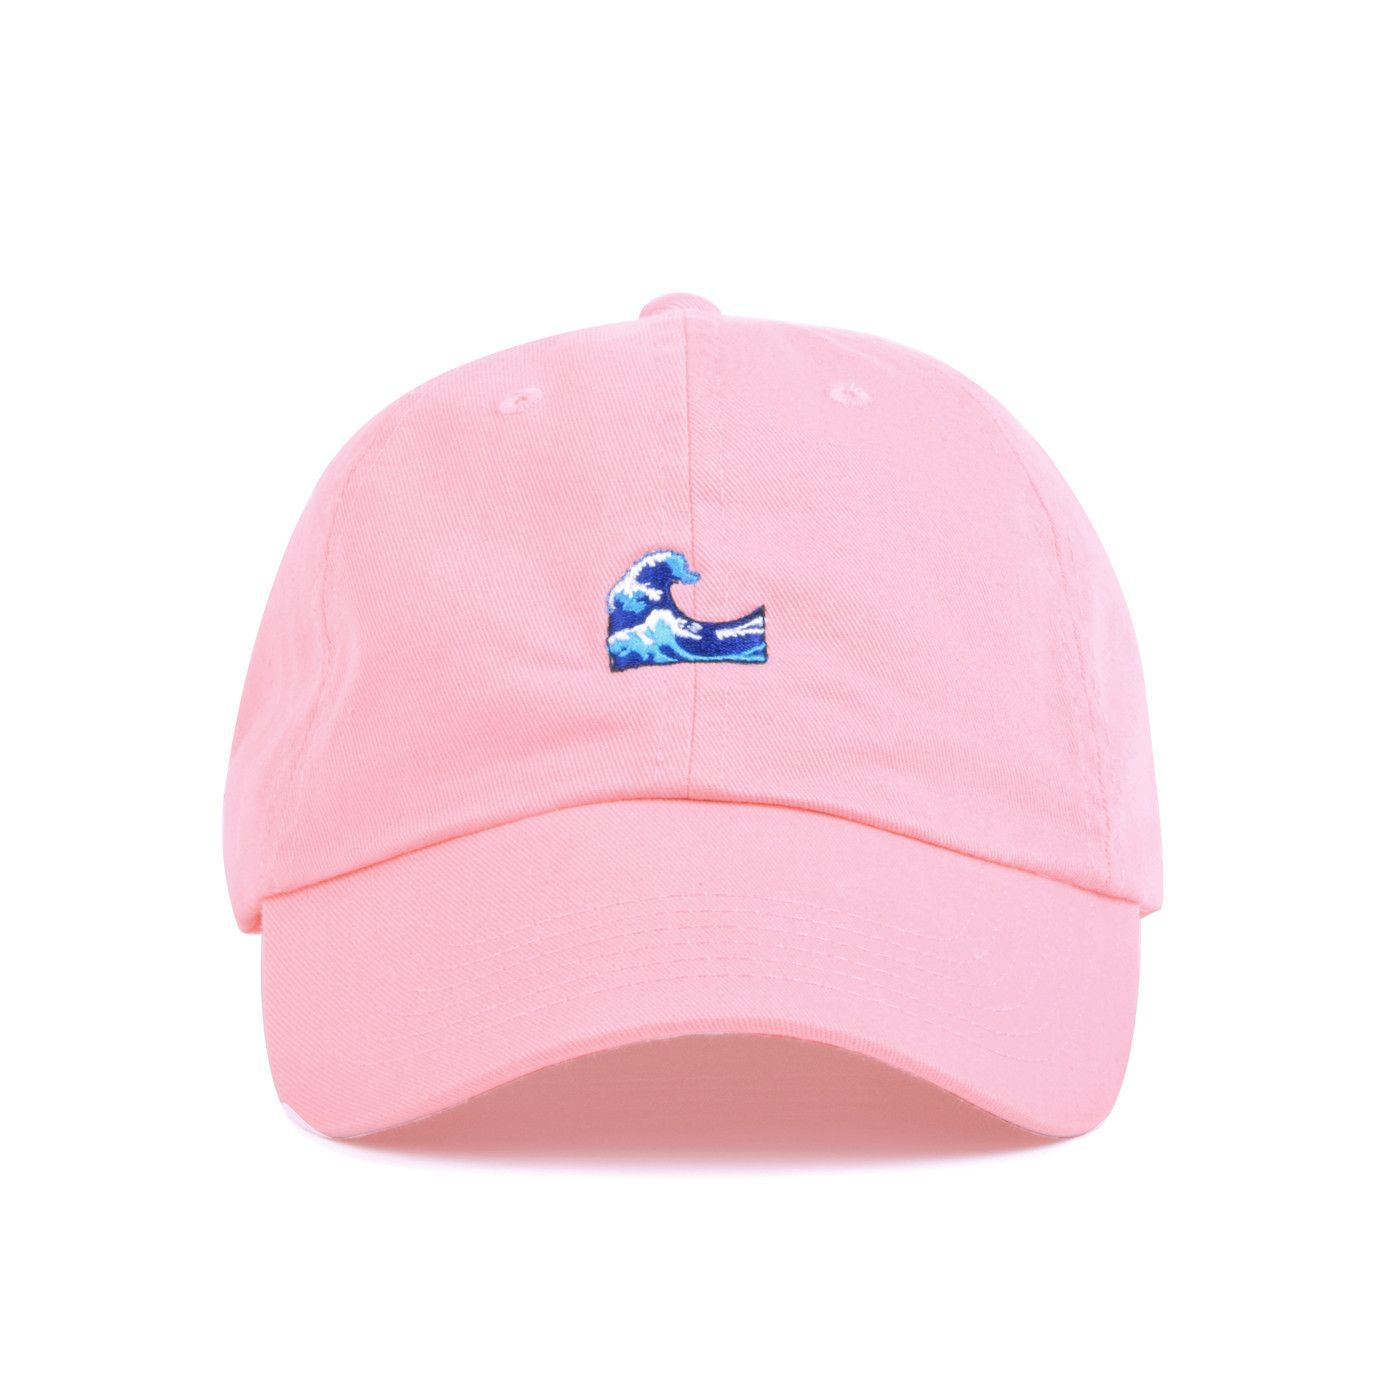 A 100 Soft Cotton Strapback Hat With Low Profile Build